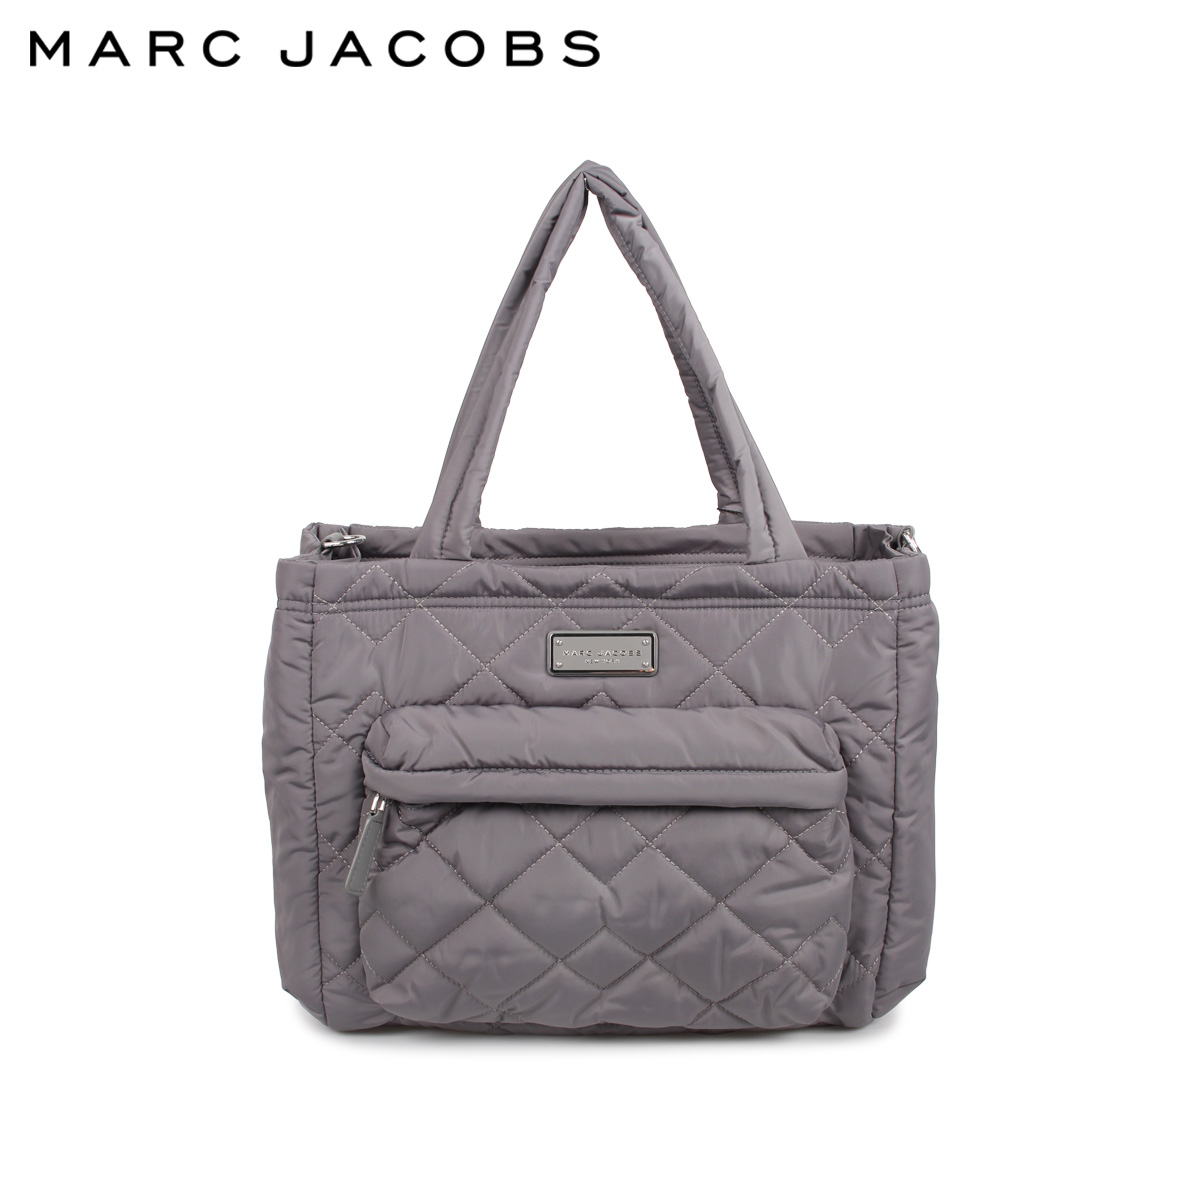 MARC JACOBS マークジェイコブス バッグ トートバッグ ショルダー レディース QUILTED TOTE グレー M0011380-097 [3/10 新入荷]